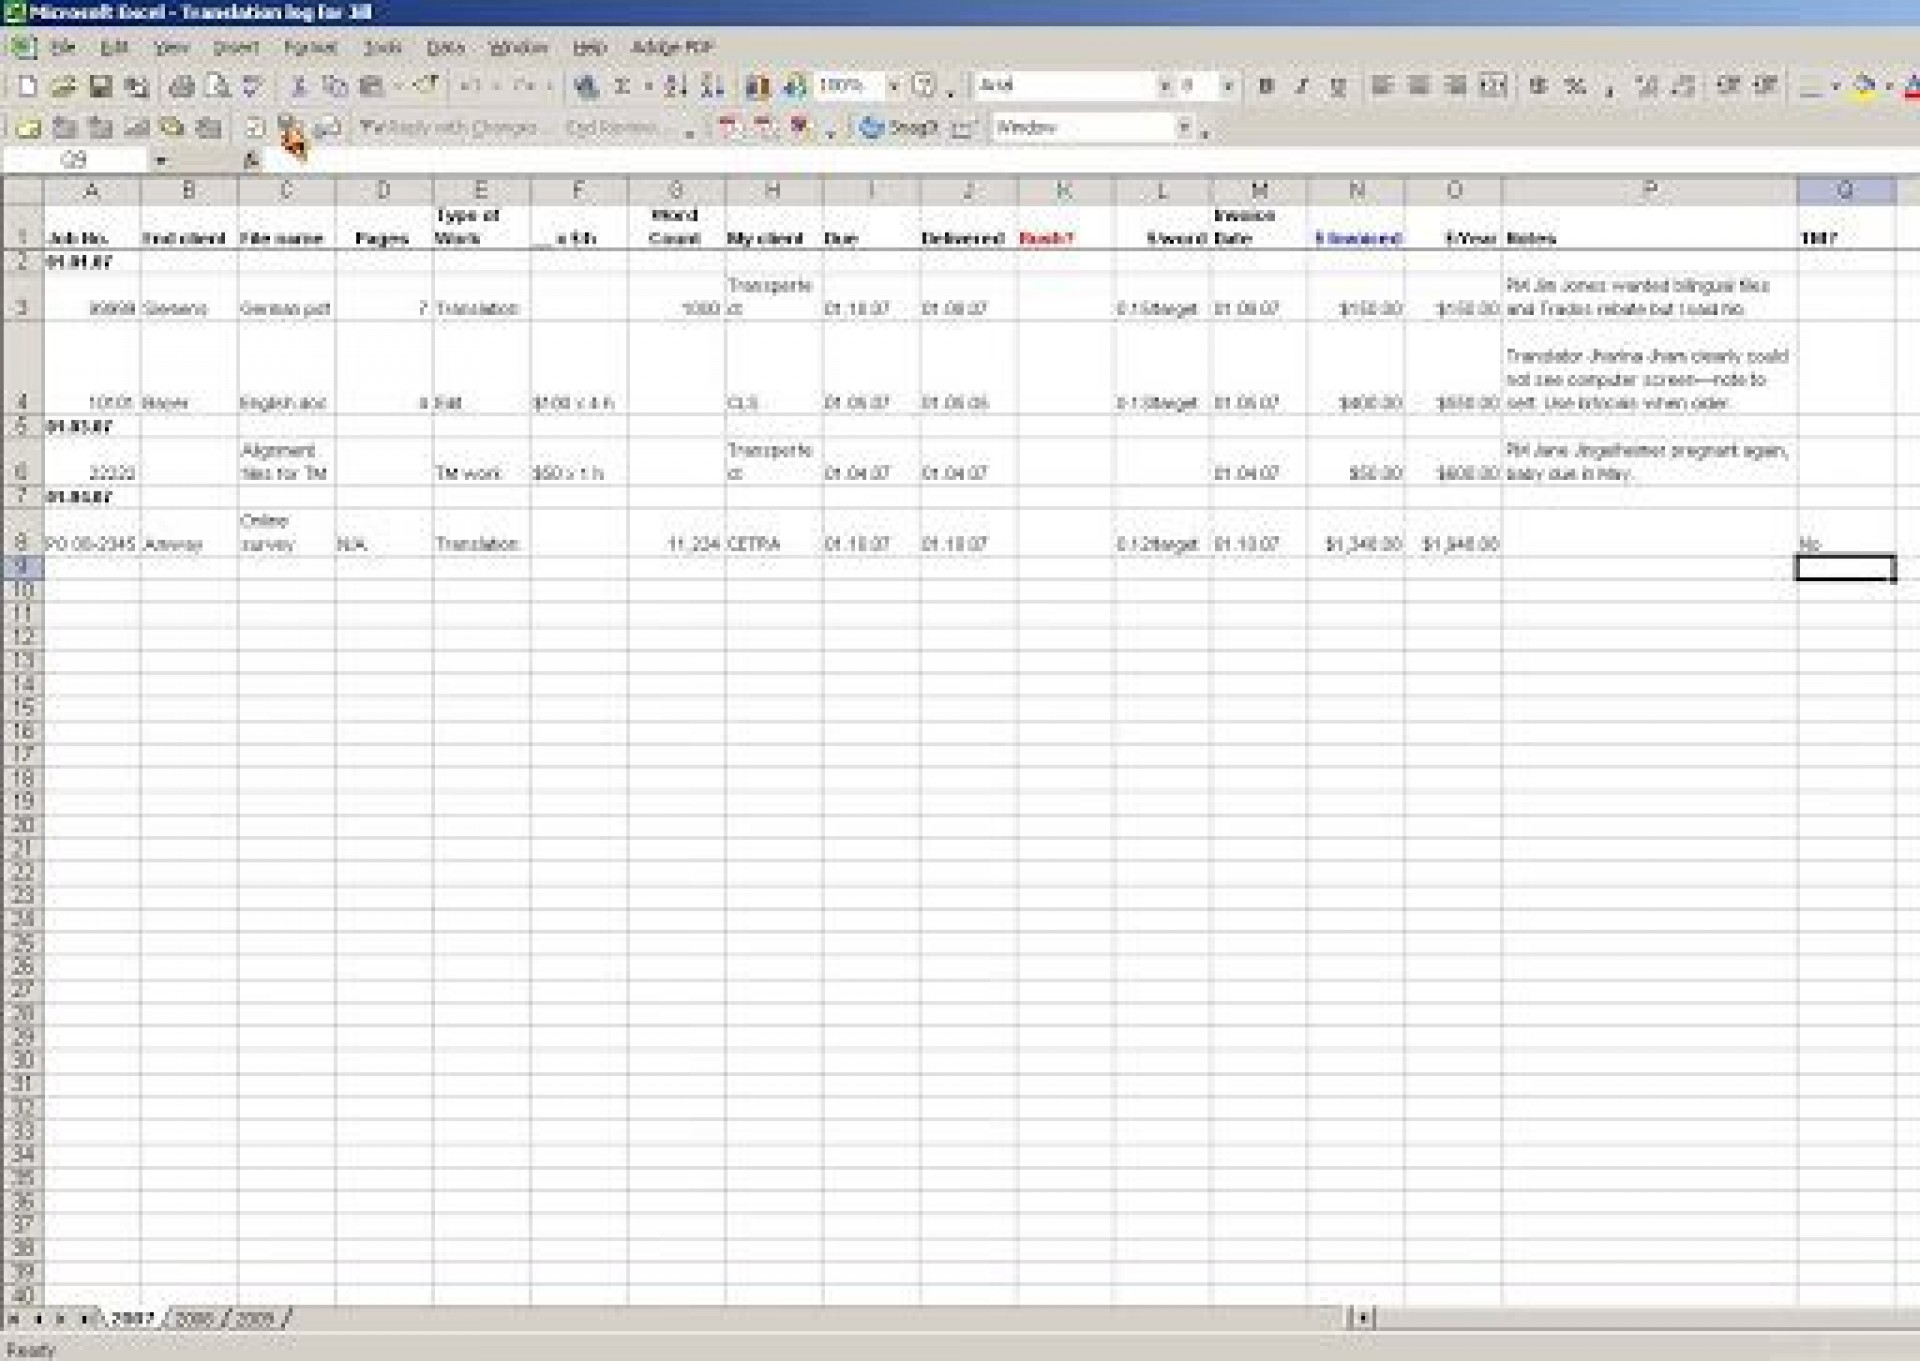 006 Surprising Excel Work Order Tracking Template High Def  Construction Microsoft1920